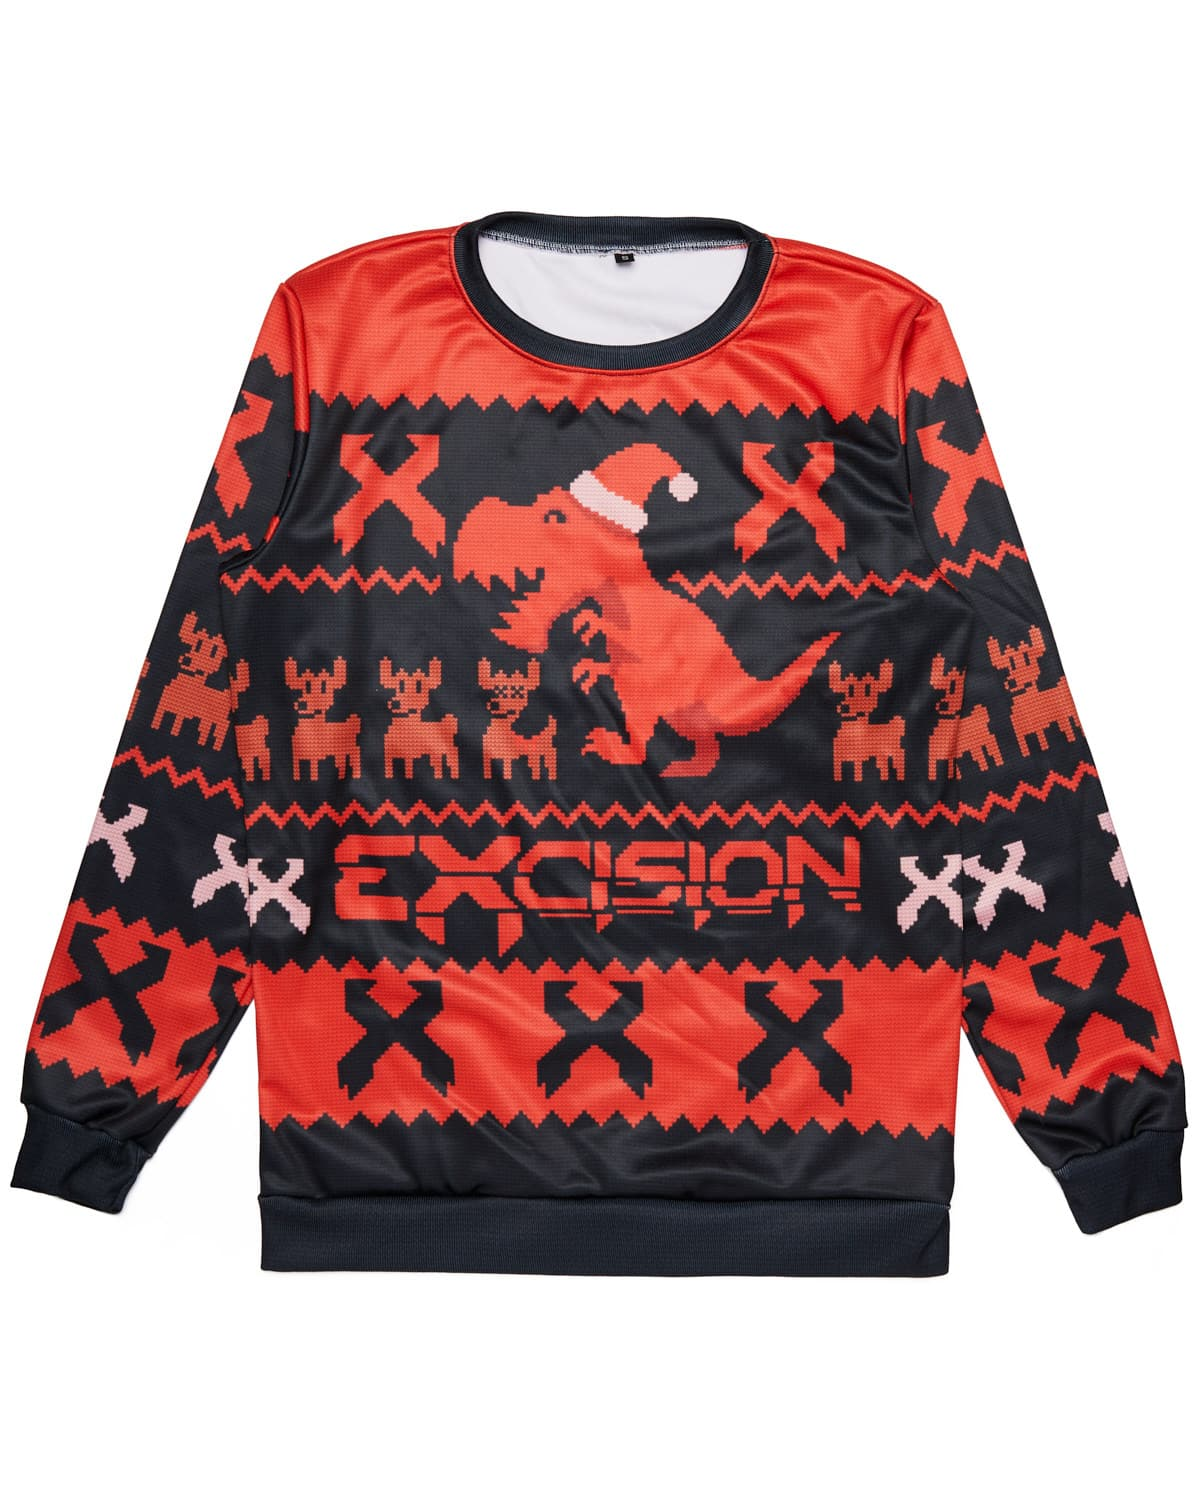 Excision Ugly Christmas Sweater - Black/Red